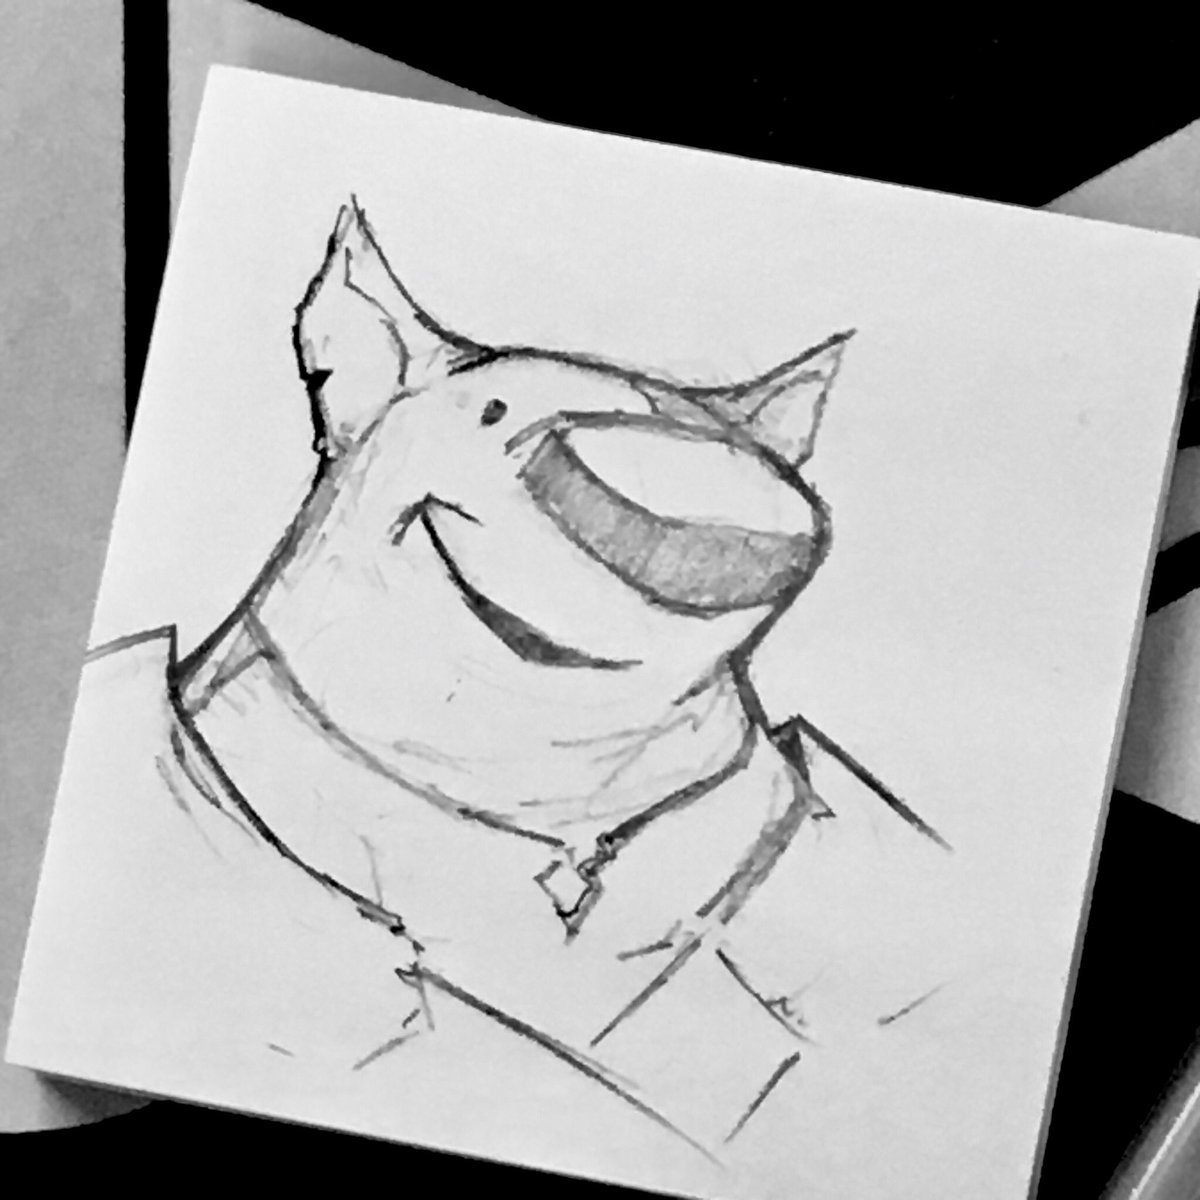 Hey there, Pup! Moving this story along a panel at a time. #wip #sketches #sketch_daily #doodles #dailydoodles #drawings #webcomics  #comics #comicart #art #wipart  #sketch pic.twitter.com/MSZrTEaxKq